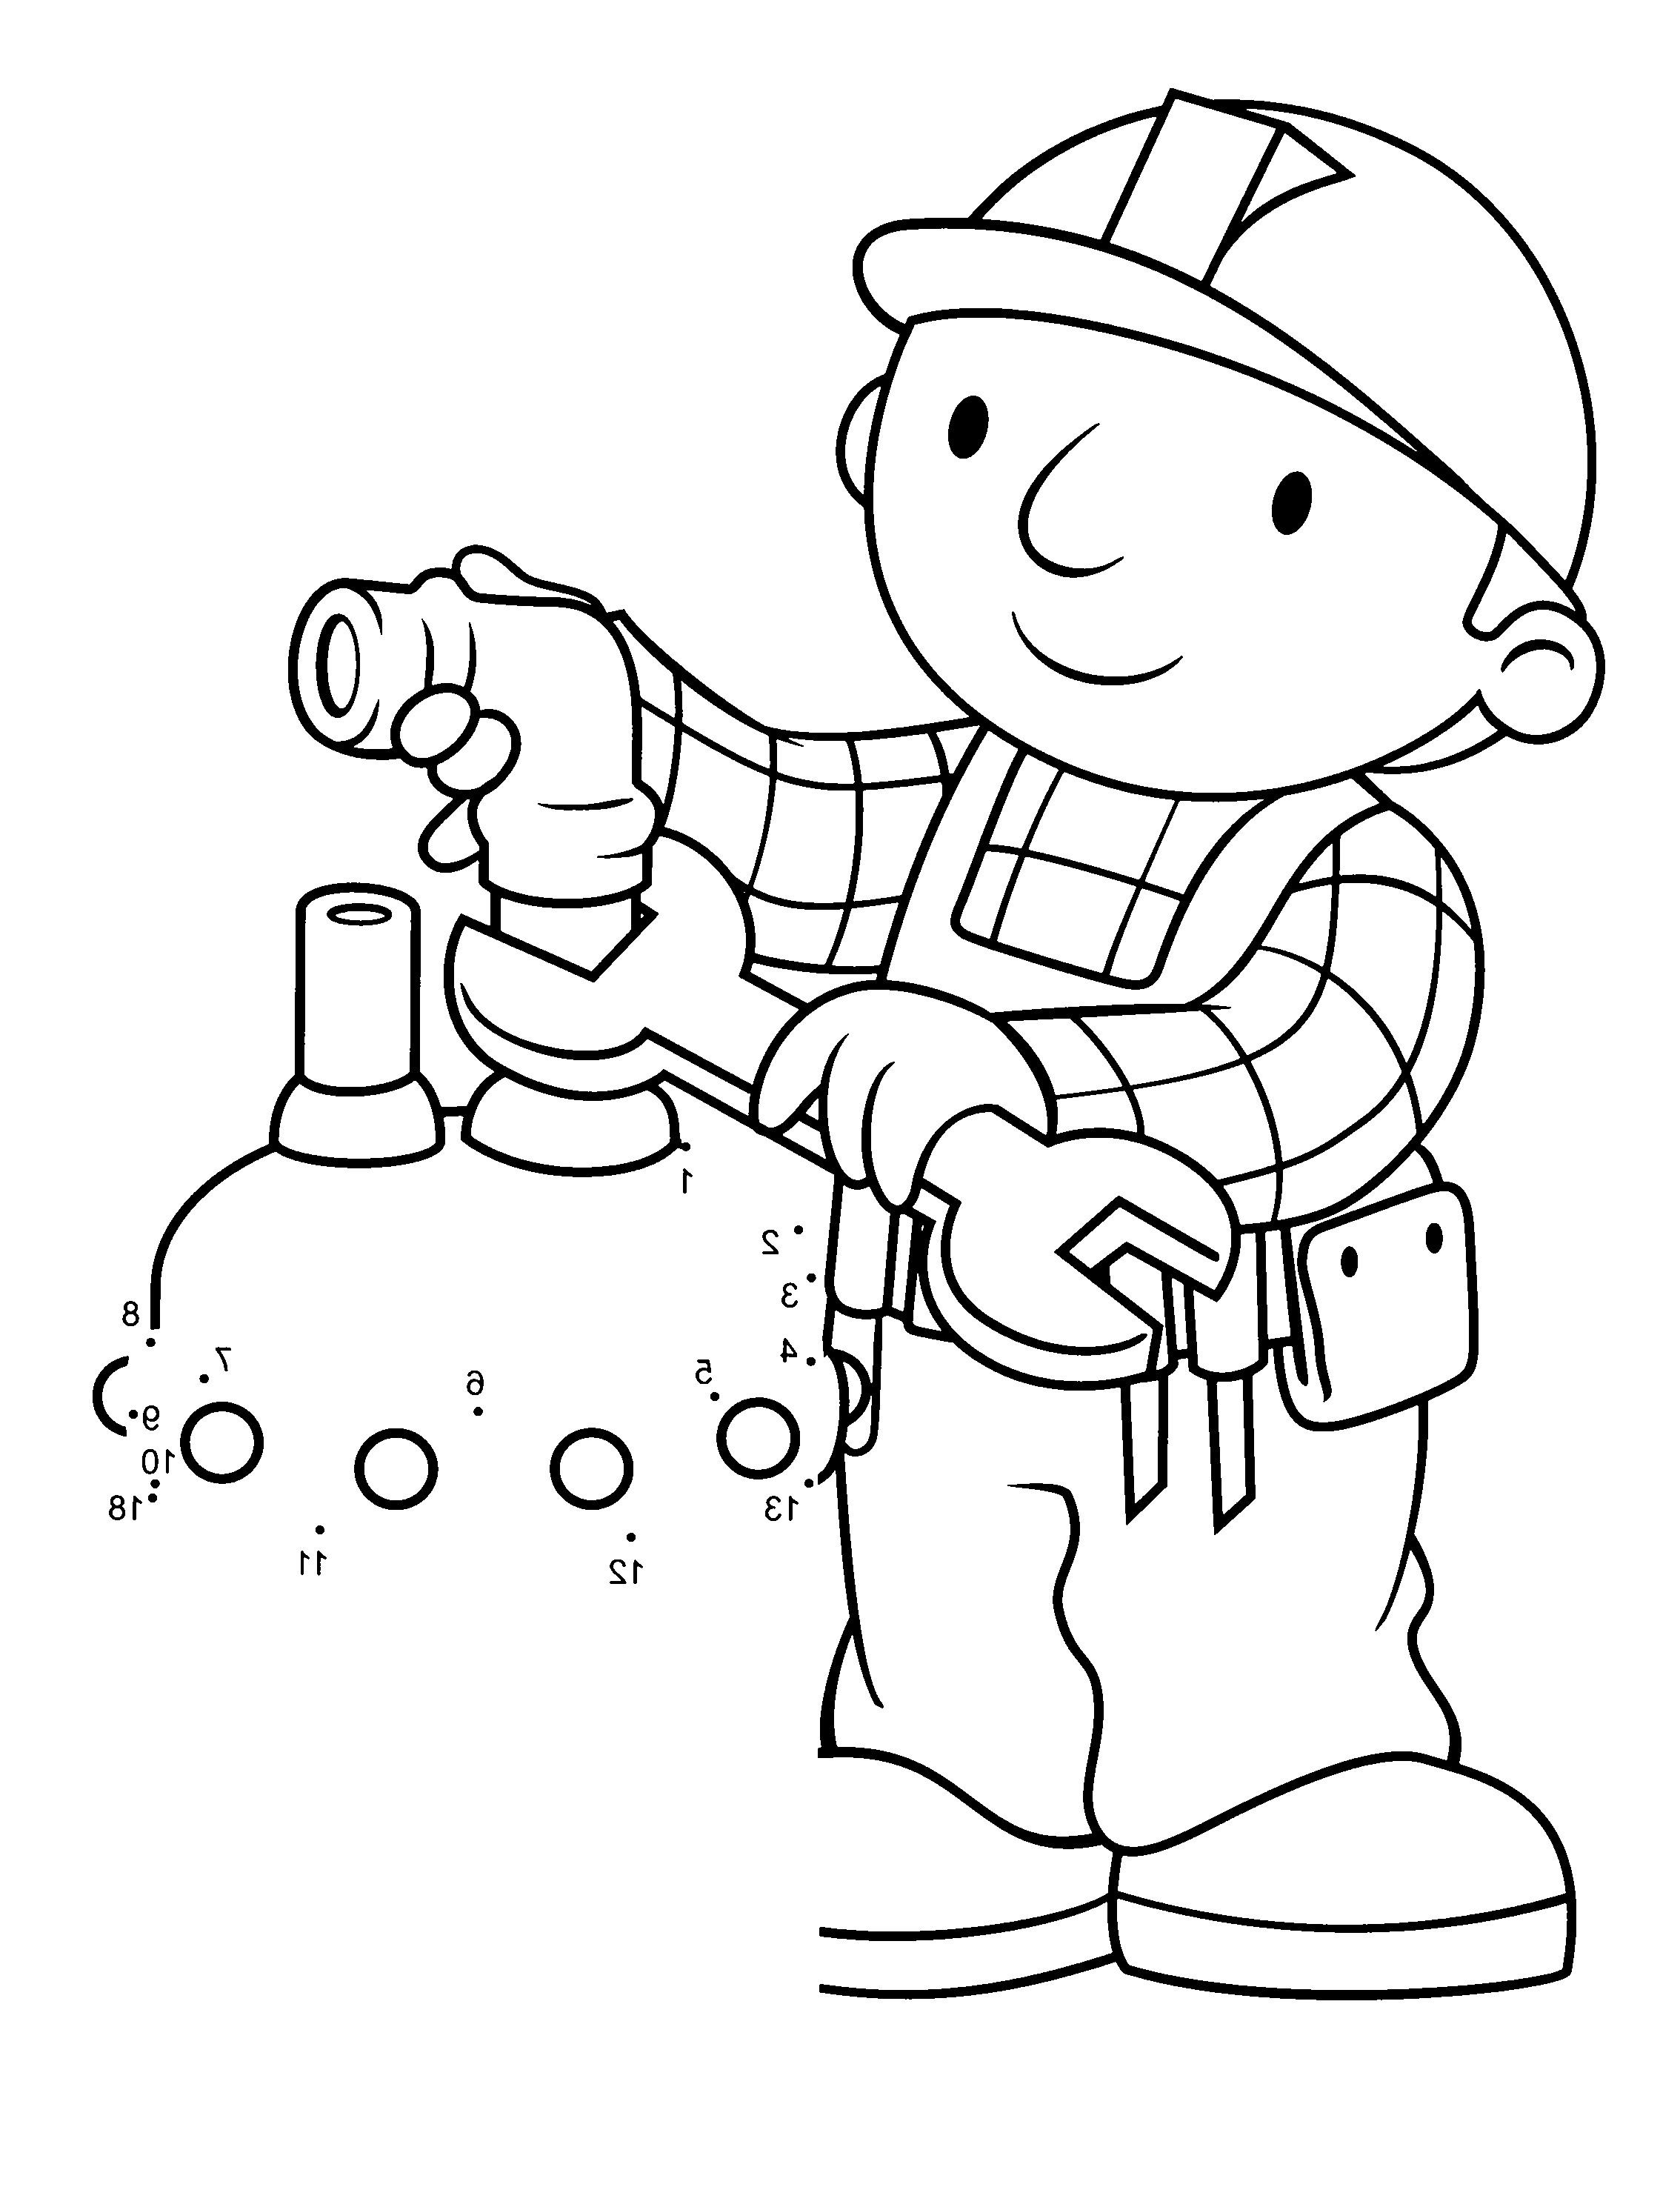 Bob The Builder Fix The Tap Water Coloring For Kids | Coloring ...